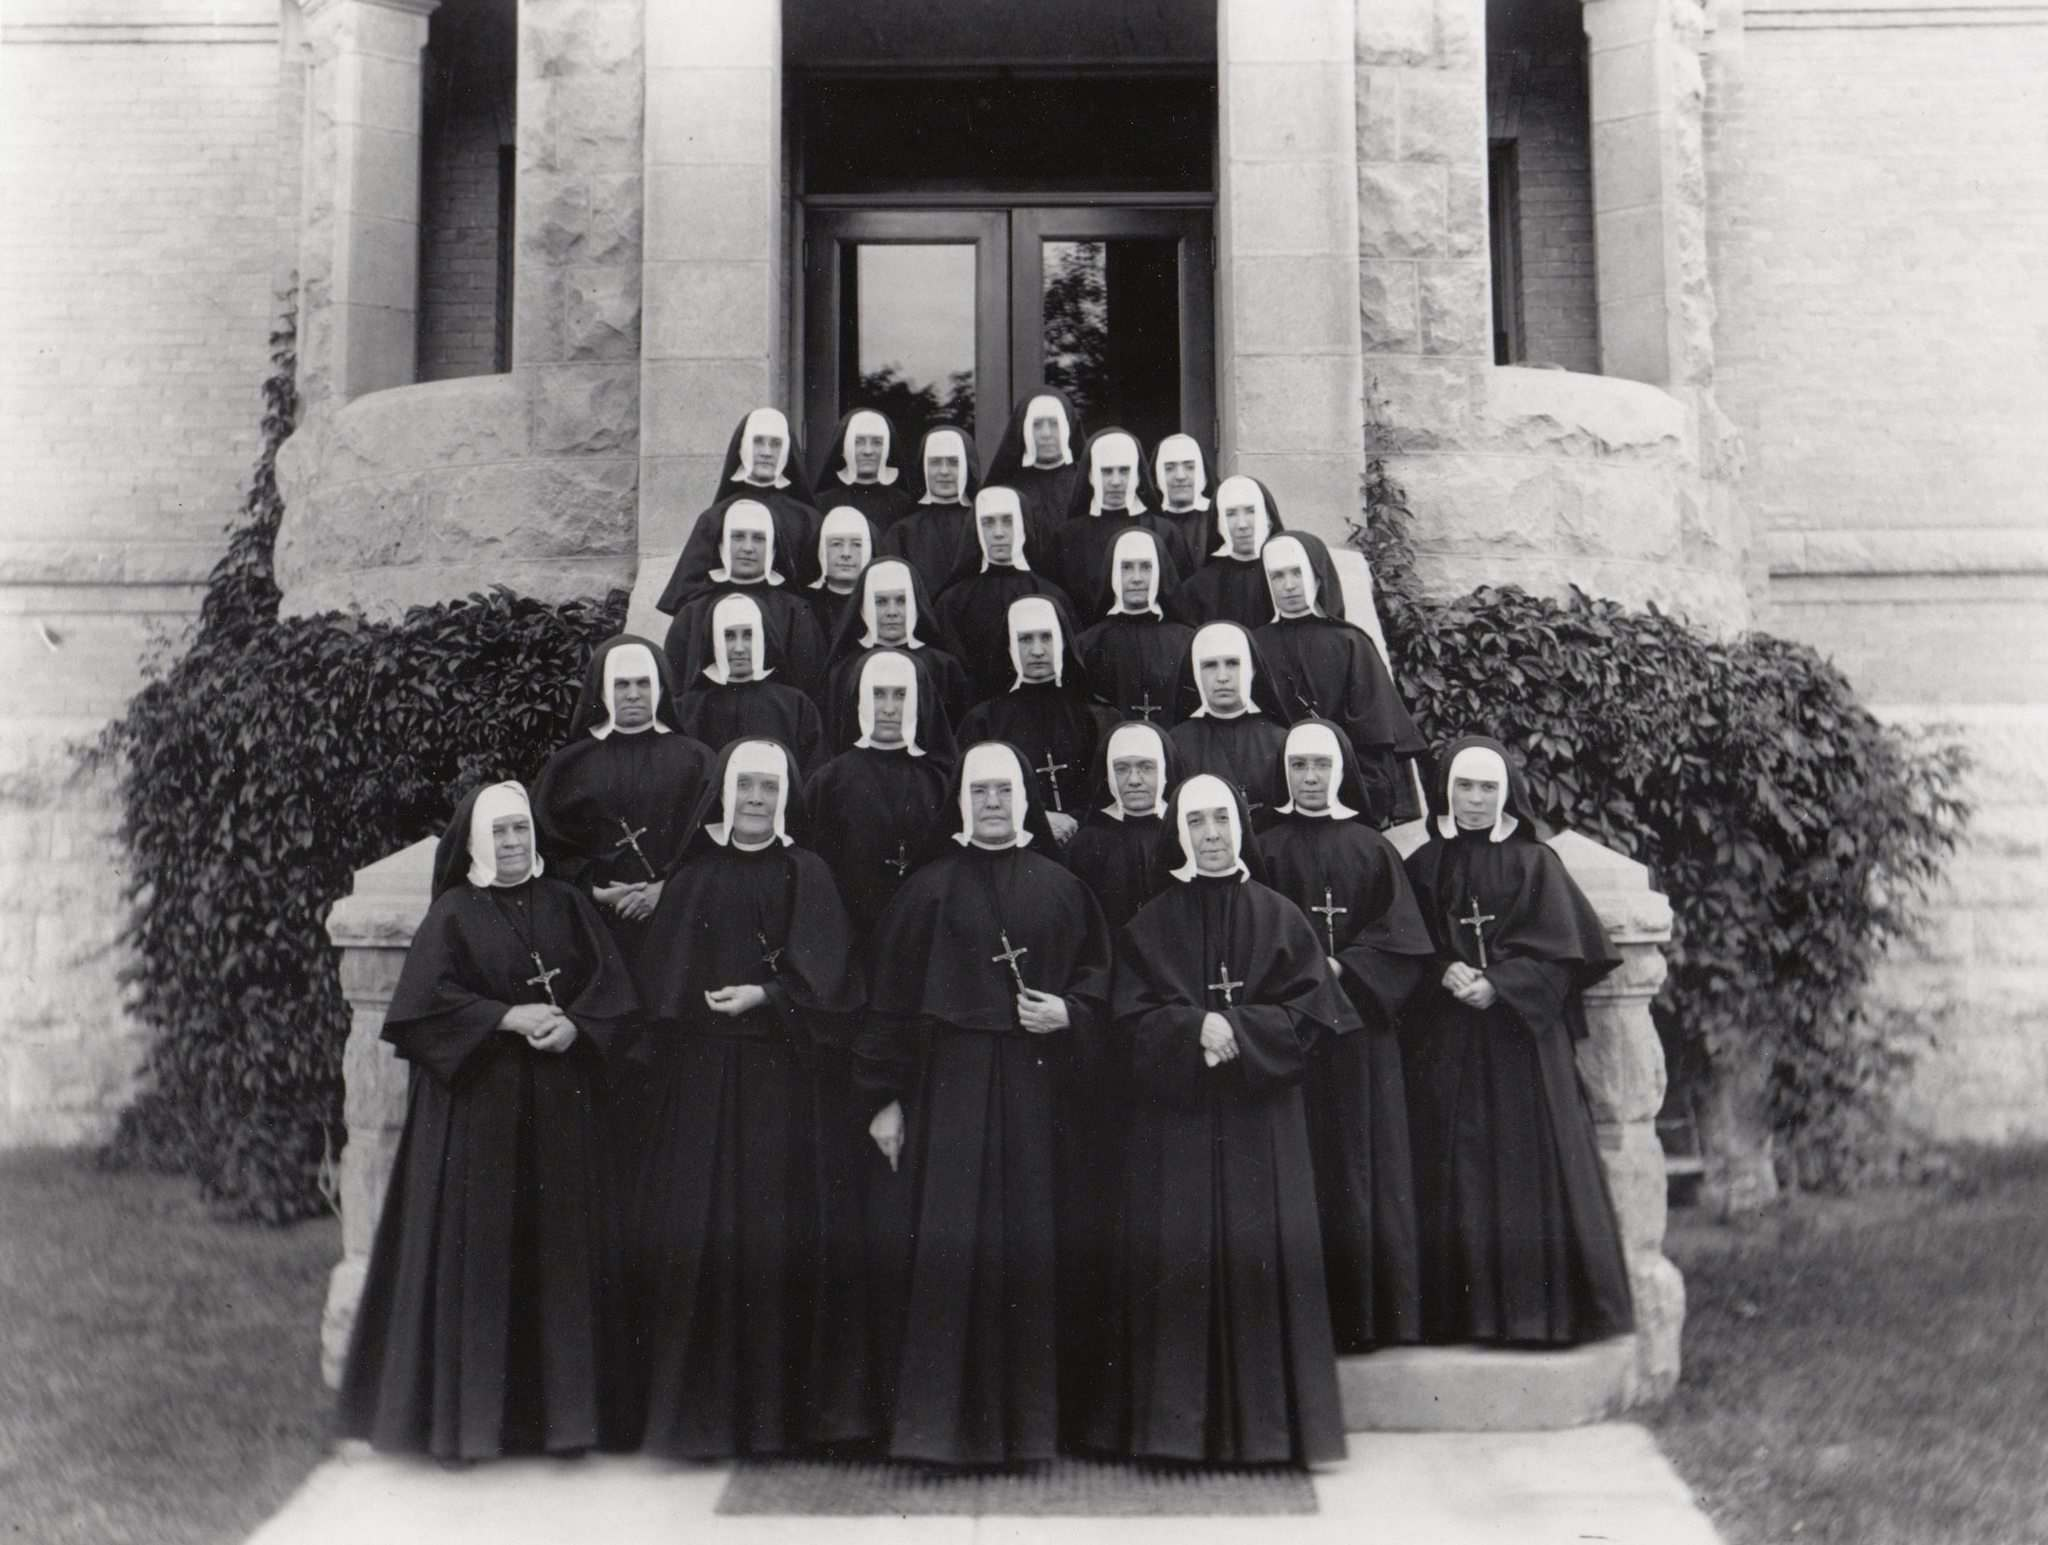 SUPPLIED  Sisters of the Holy Names of Jesus and Mary on the front steps of St Mary's Academy in 1915.